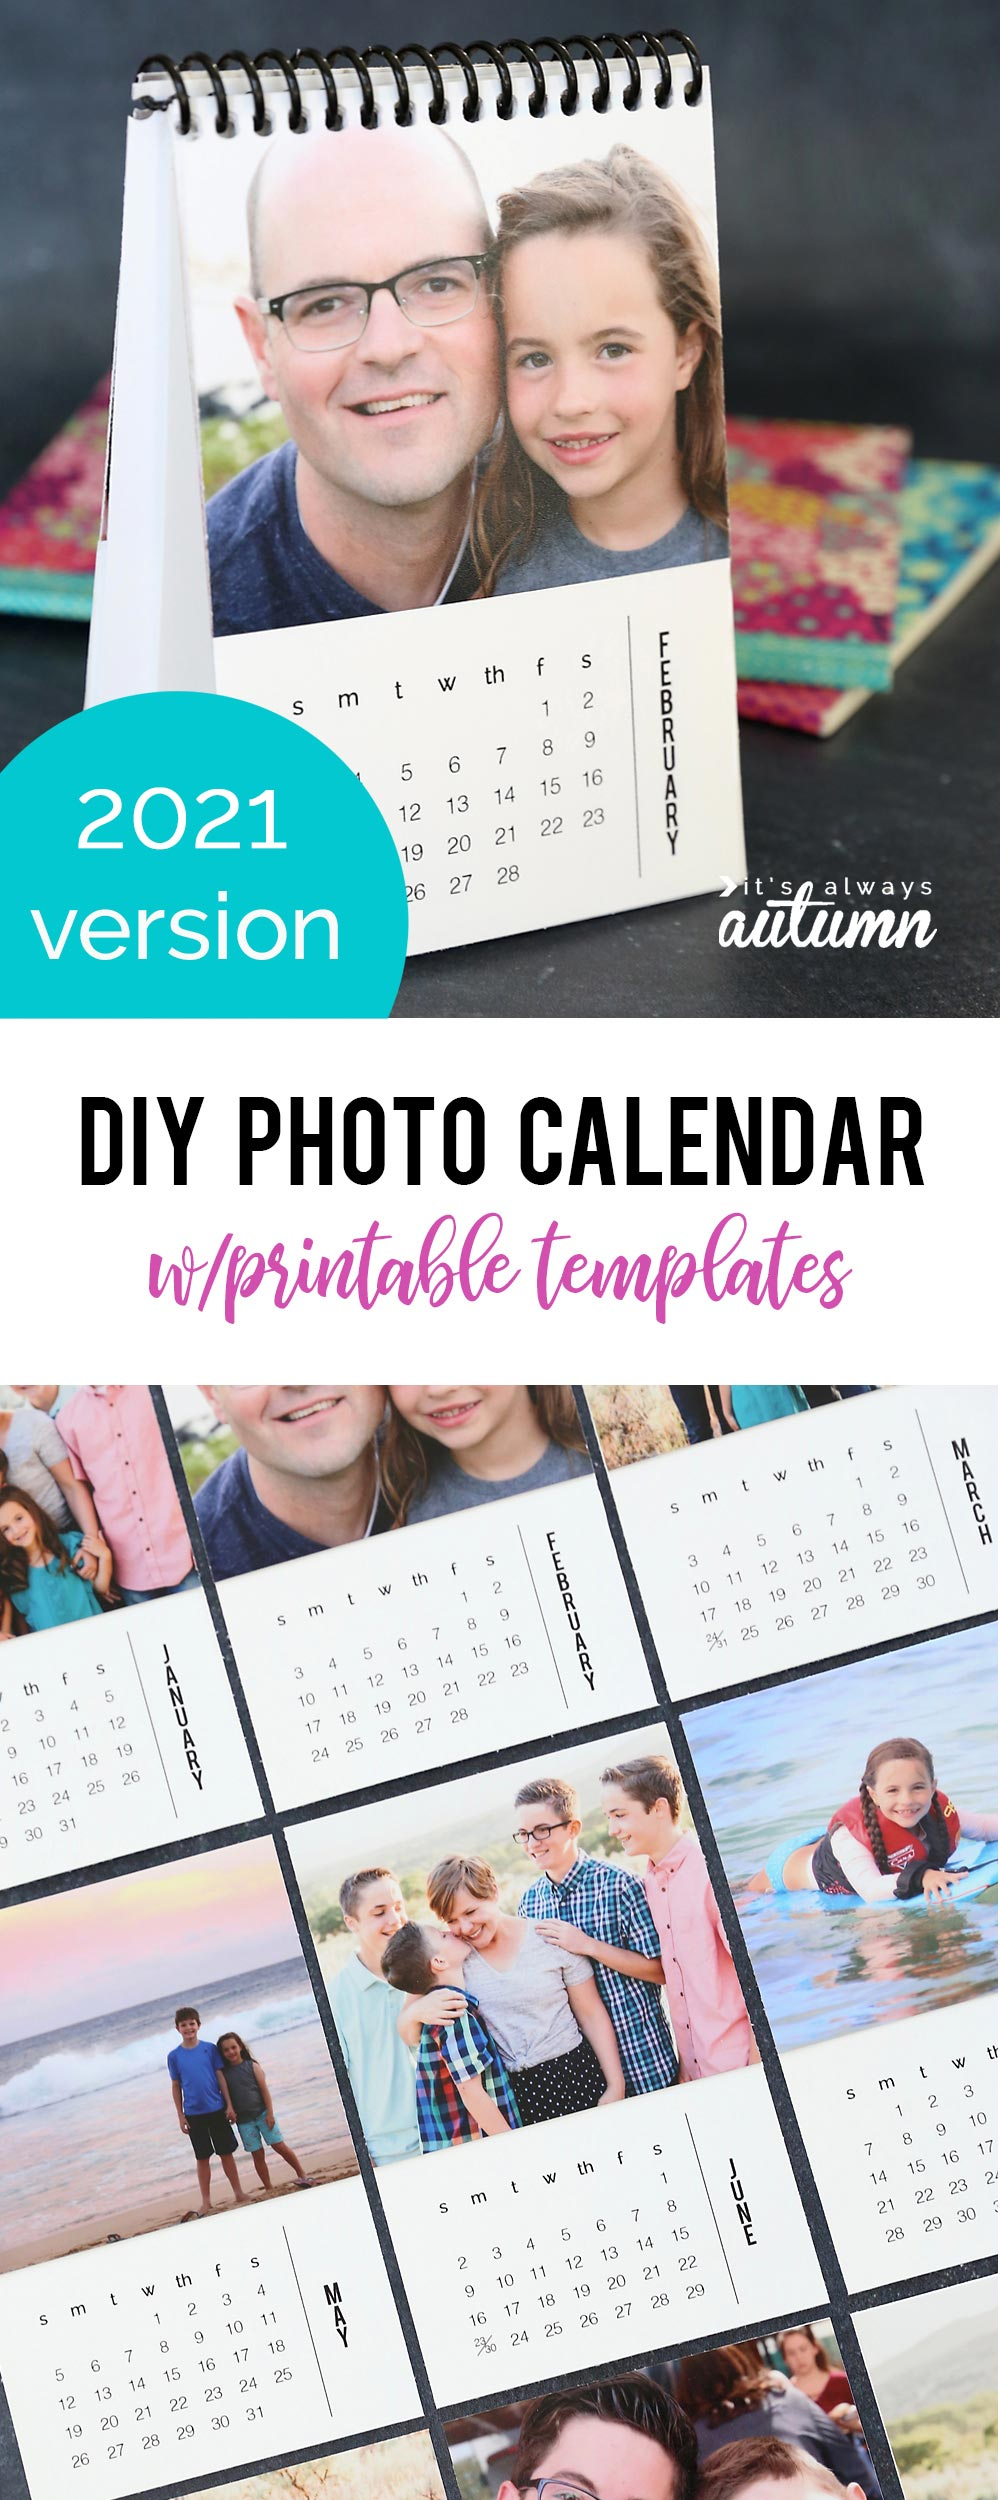 Mini photo calendar for 2021 that you can personalize with your own photos